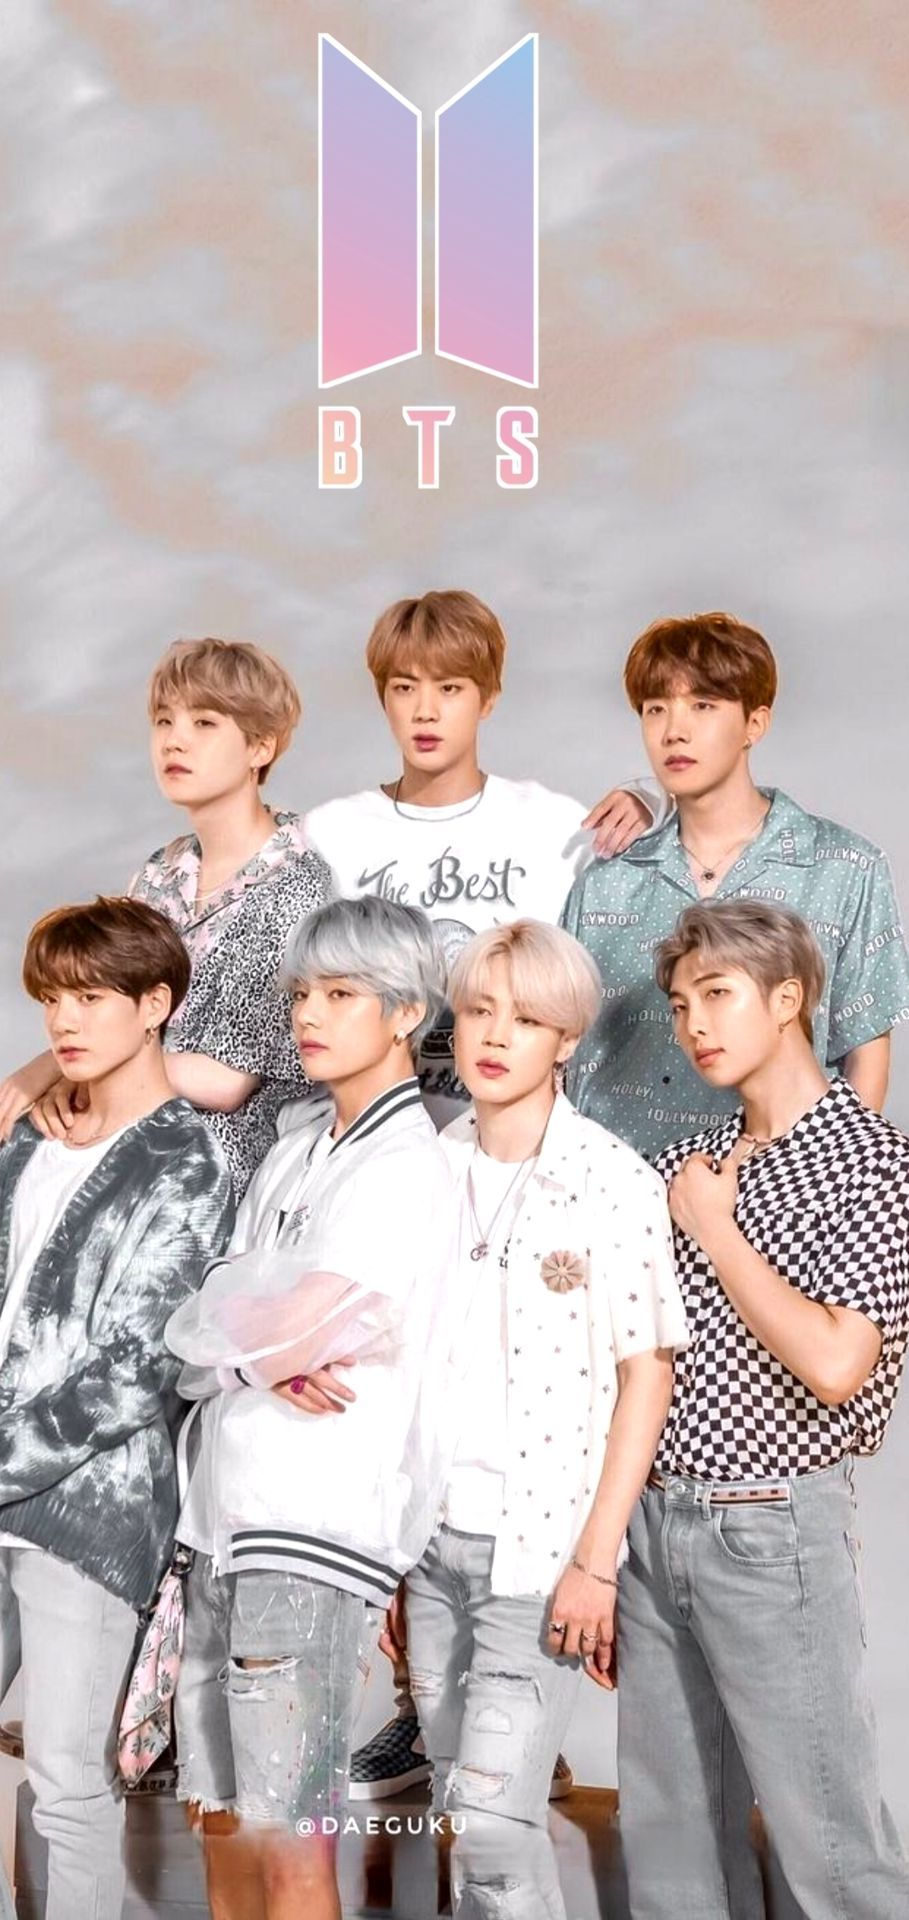 The Wrong Jeon Bts Backgrounds Bts Group Photo Wallpaper Bts Wallpaper Bts group wallpaper download